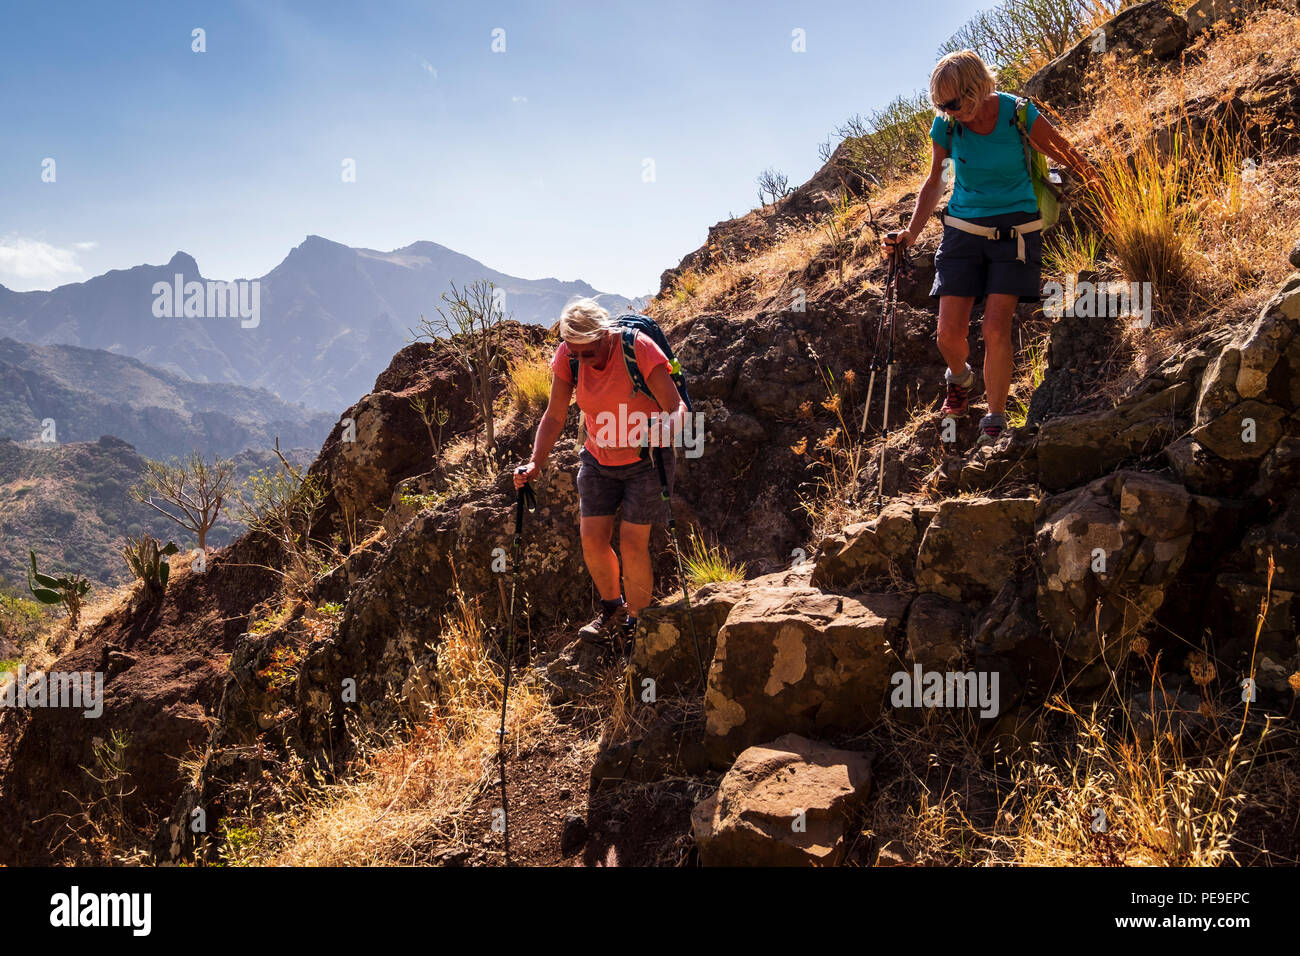 Scrambling up the rocky sides of the barranco above Valle Grande in Anaga, Tenerife, Canary Islands, Spain - Stock Image